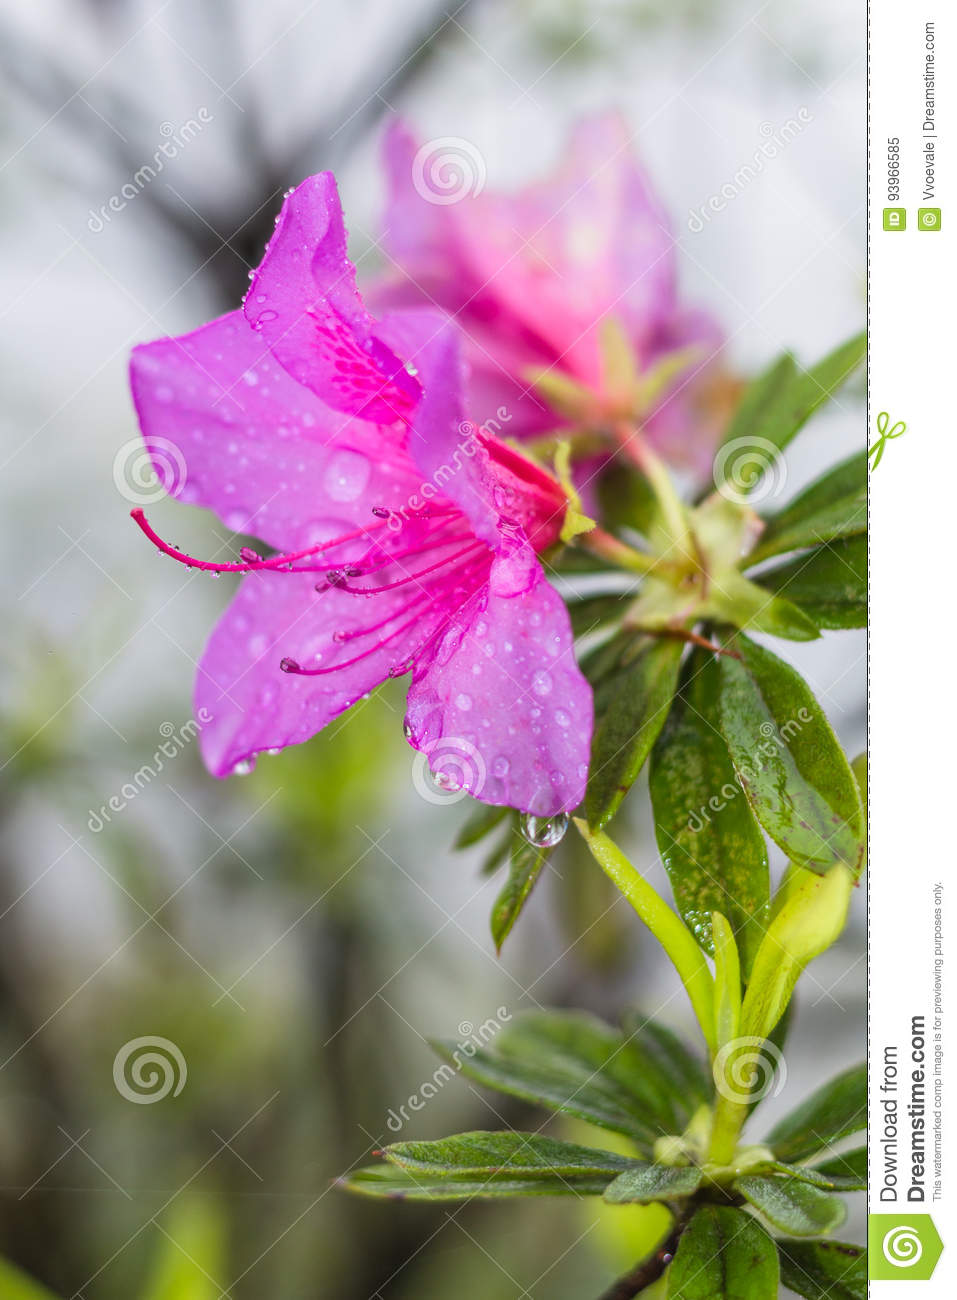 Pink Lily Flower In Spring Rain Stock Image Image Of Raindrop